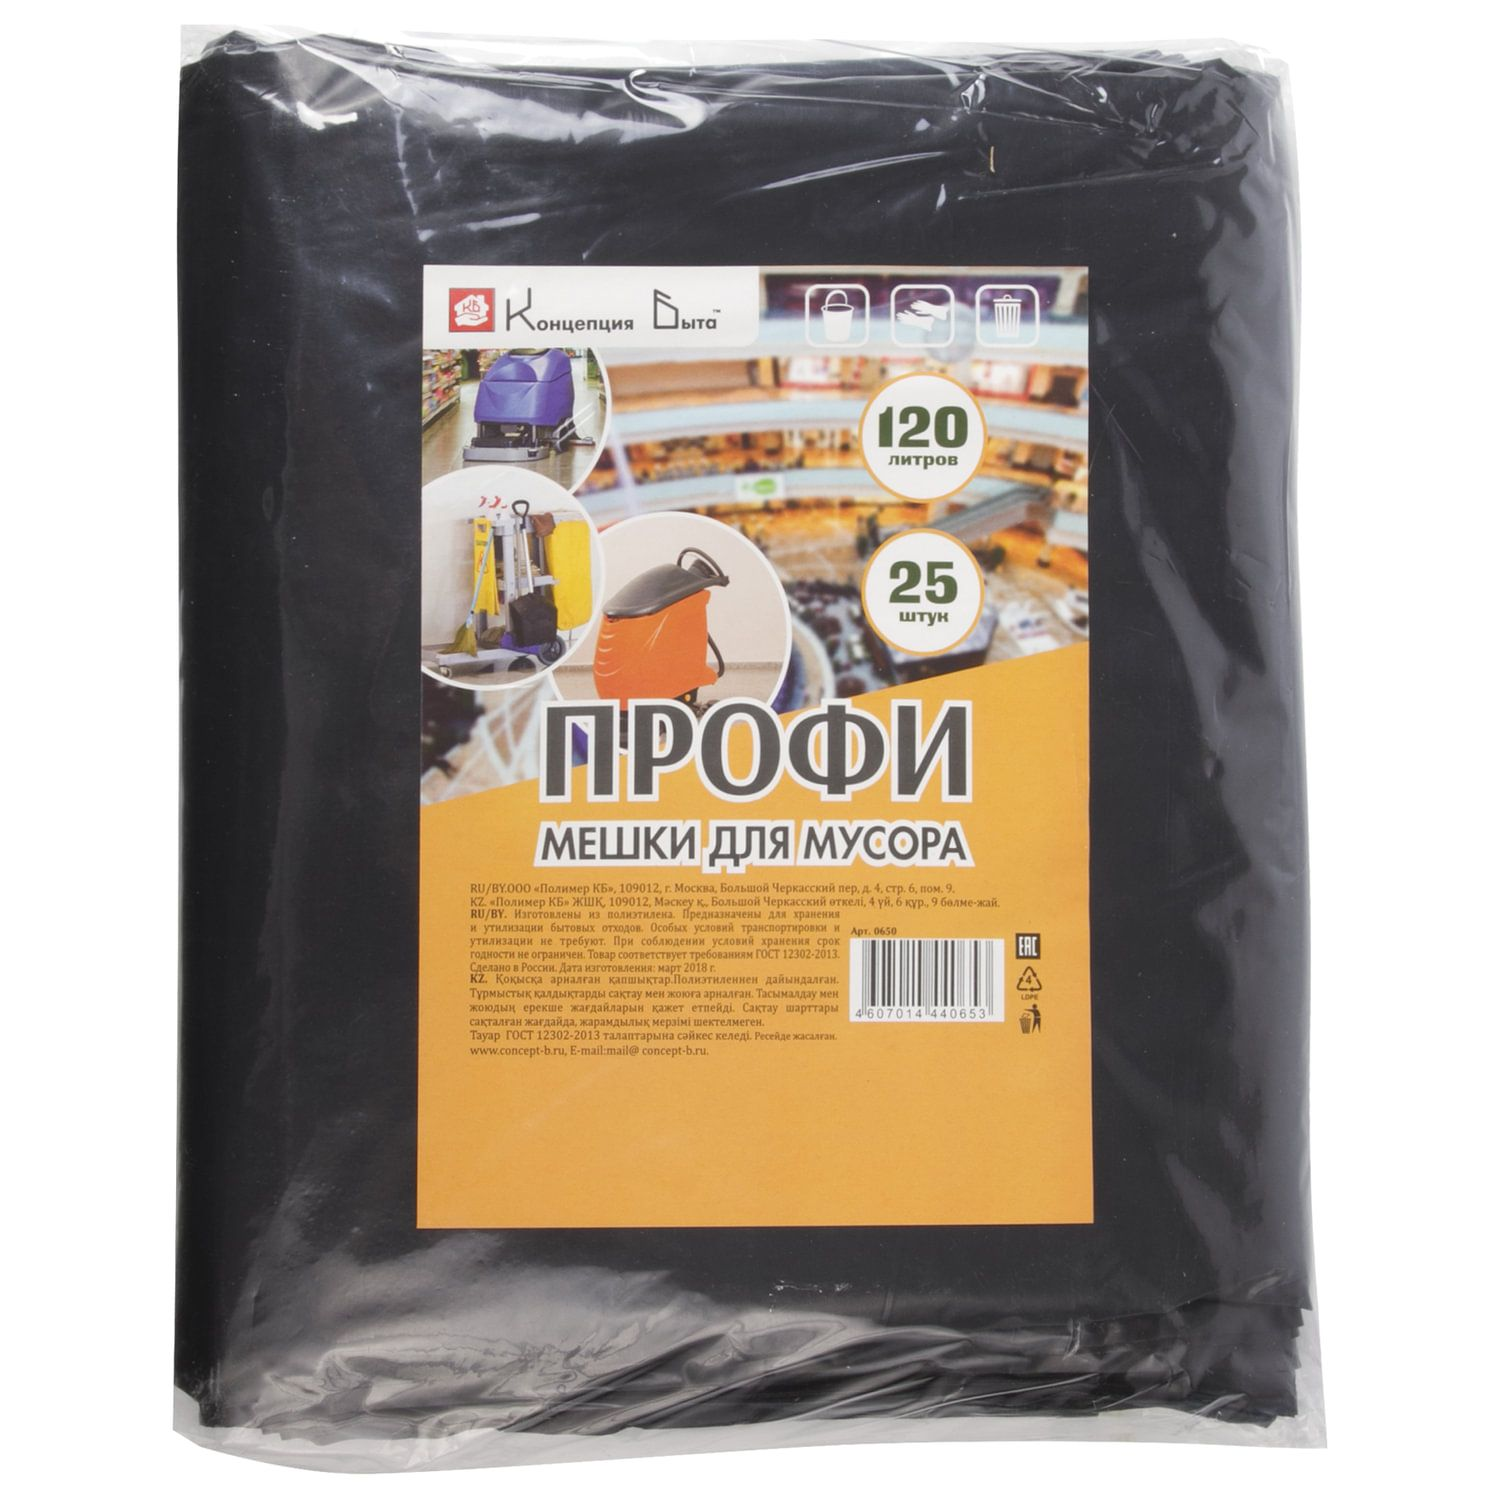 "CONCEPT OF HOUSEHOLD / Garbage bags ""Profi"" 120 l, black, in a pack of 25 pcs., LDPE, 55 microns, 70x110 cm, extra strong"